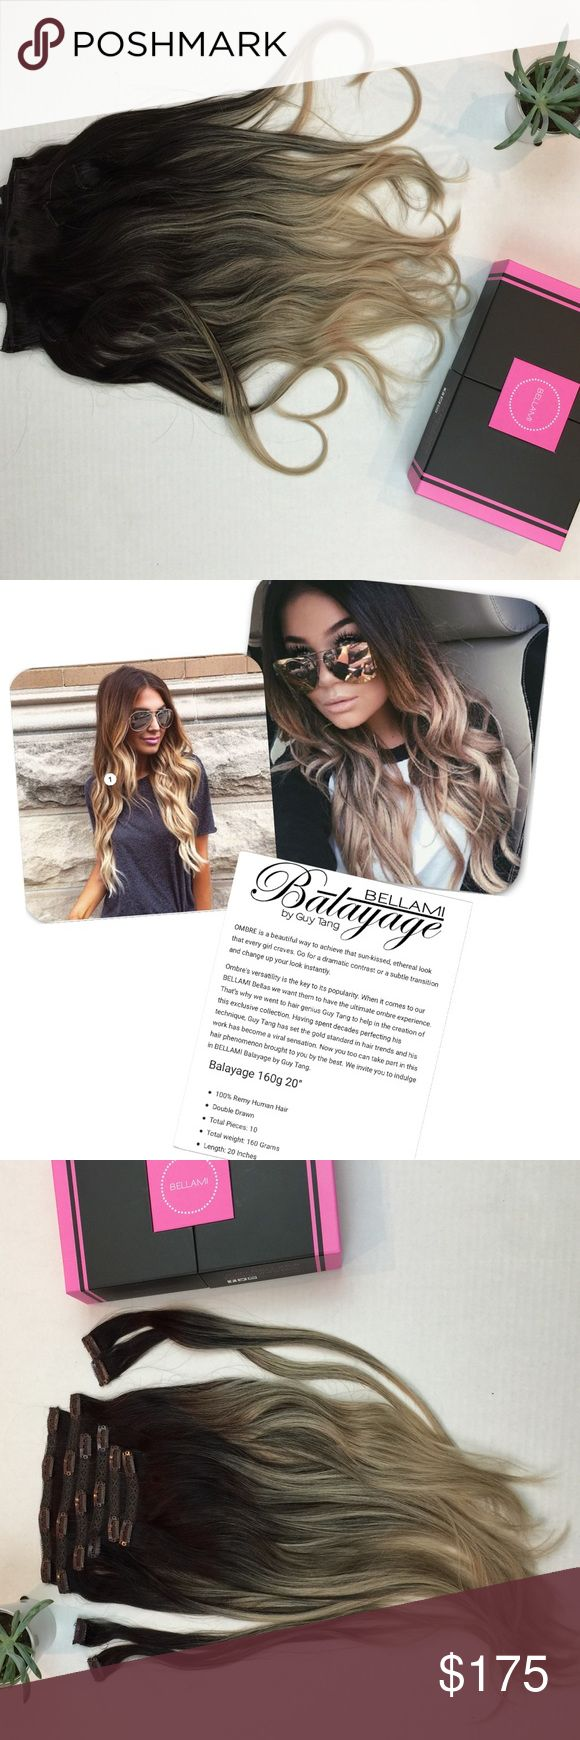 NEW ll • Bellami Balayage Hair Extensions PRICE FIRM • 🚫Trades • New In Box • Color: #1C/18 • Style: Bellami Balayage by Guy Tang • New in original package. Never Worn. • Total weight: 160 grams • Total Pieces: 10 • Length: 20 inches • 100% Remi Human Hair • Bag and Storage Box included • Balayage Range Contains: 1 x 8 inch wefts 1 x 7 inch wefts 2 x 6 inch wefts 2 x 4 inch wefts 4 x 1.5 inch wefts BELLAMI Other